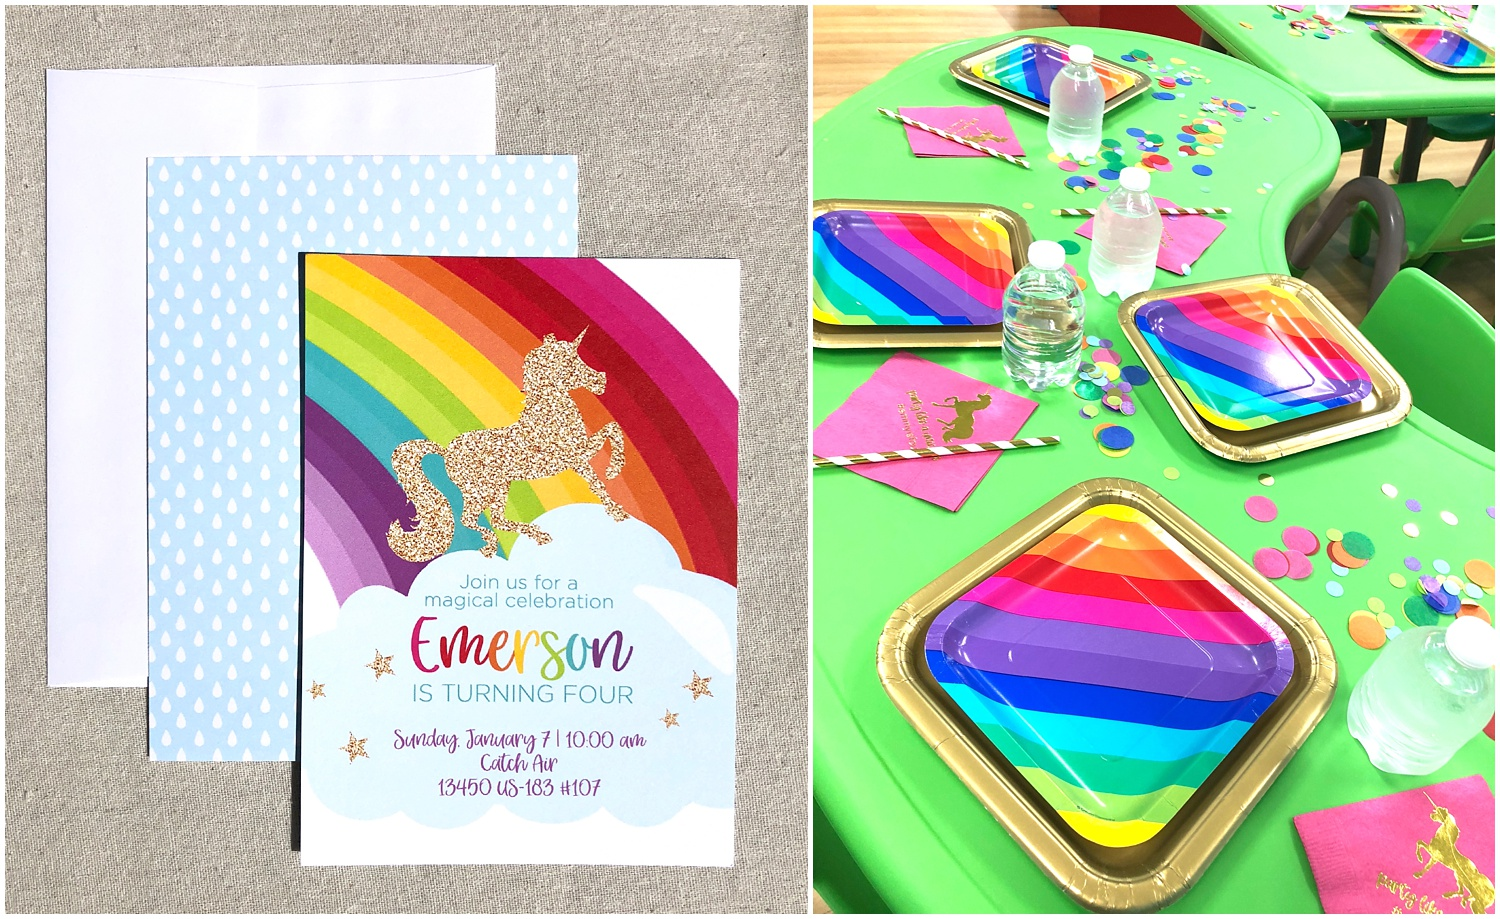 RainbowsUnicornsChildrensParty_AustinTX_0106.jpg